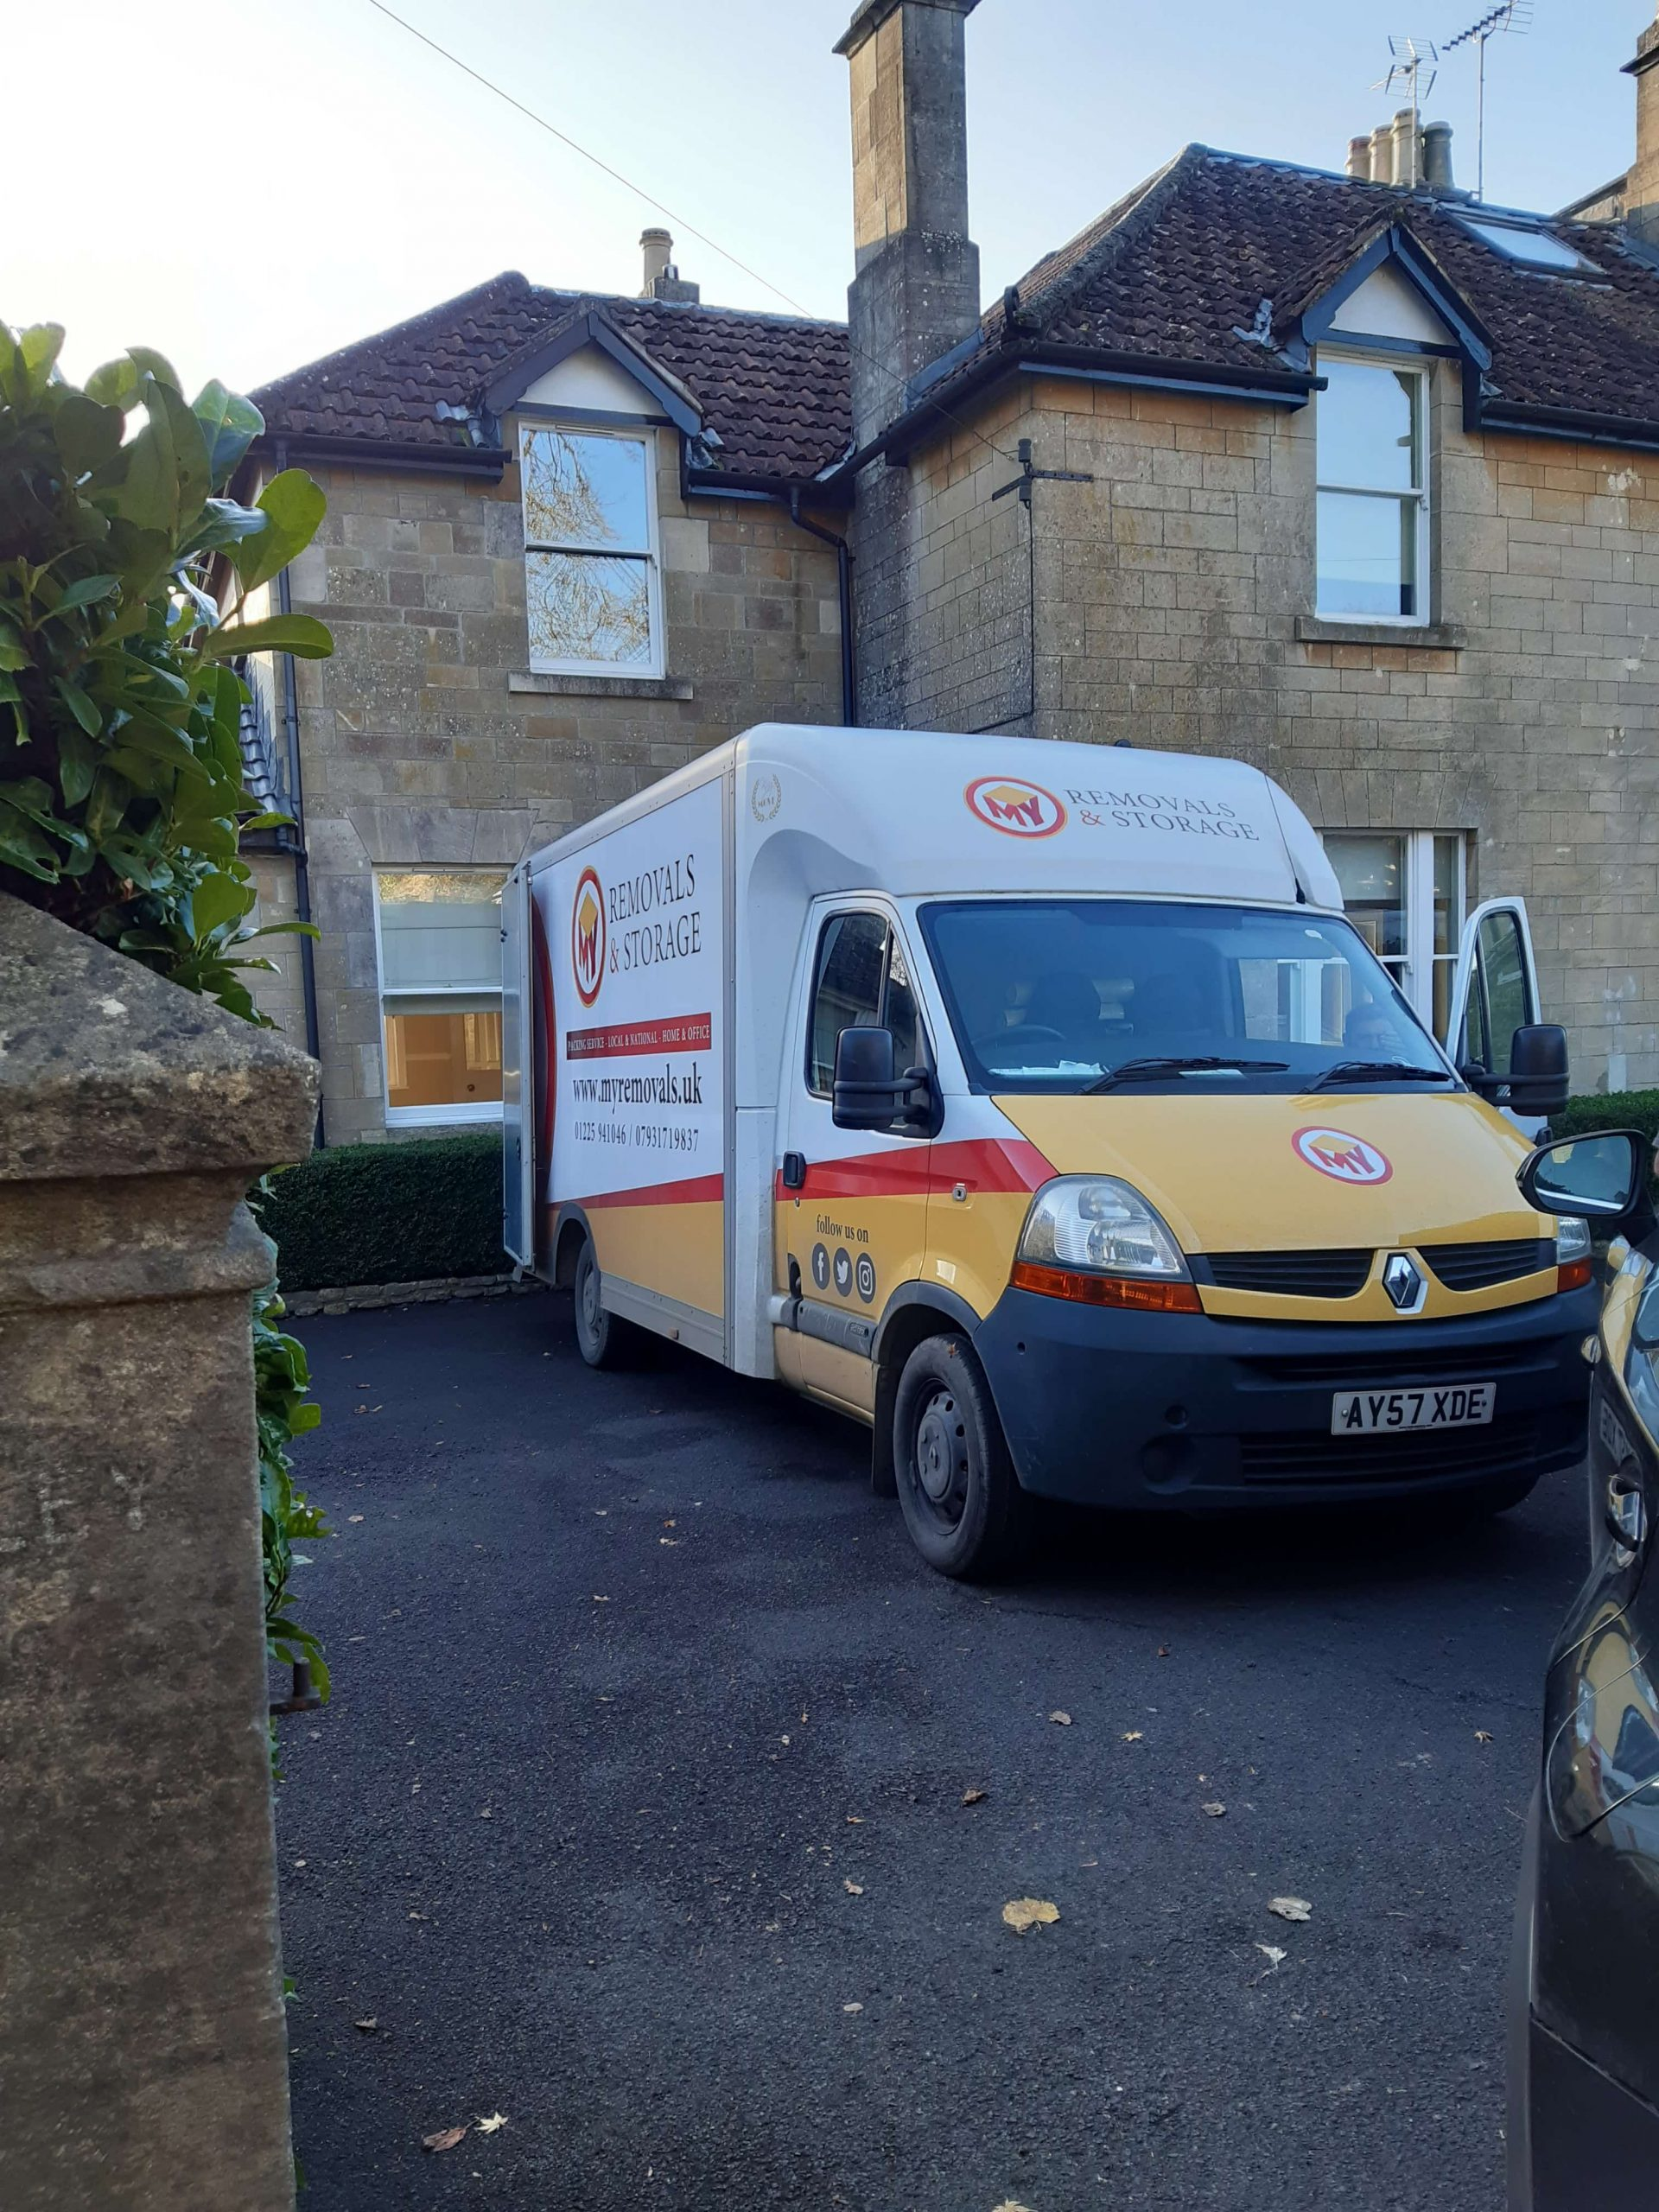 Removals and storage van in bath